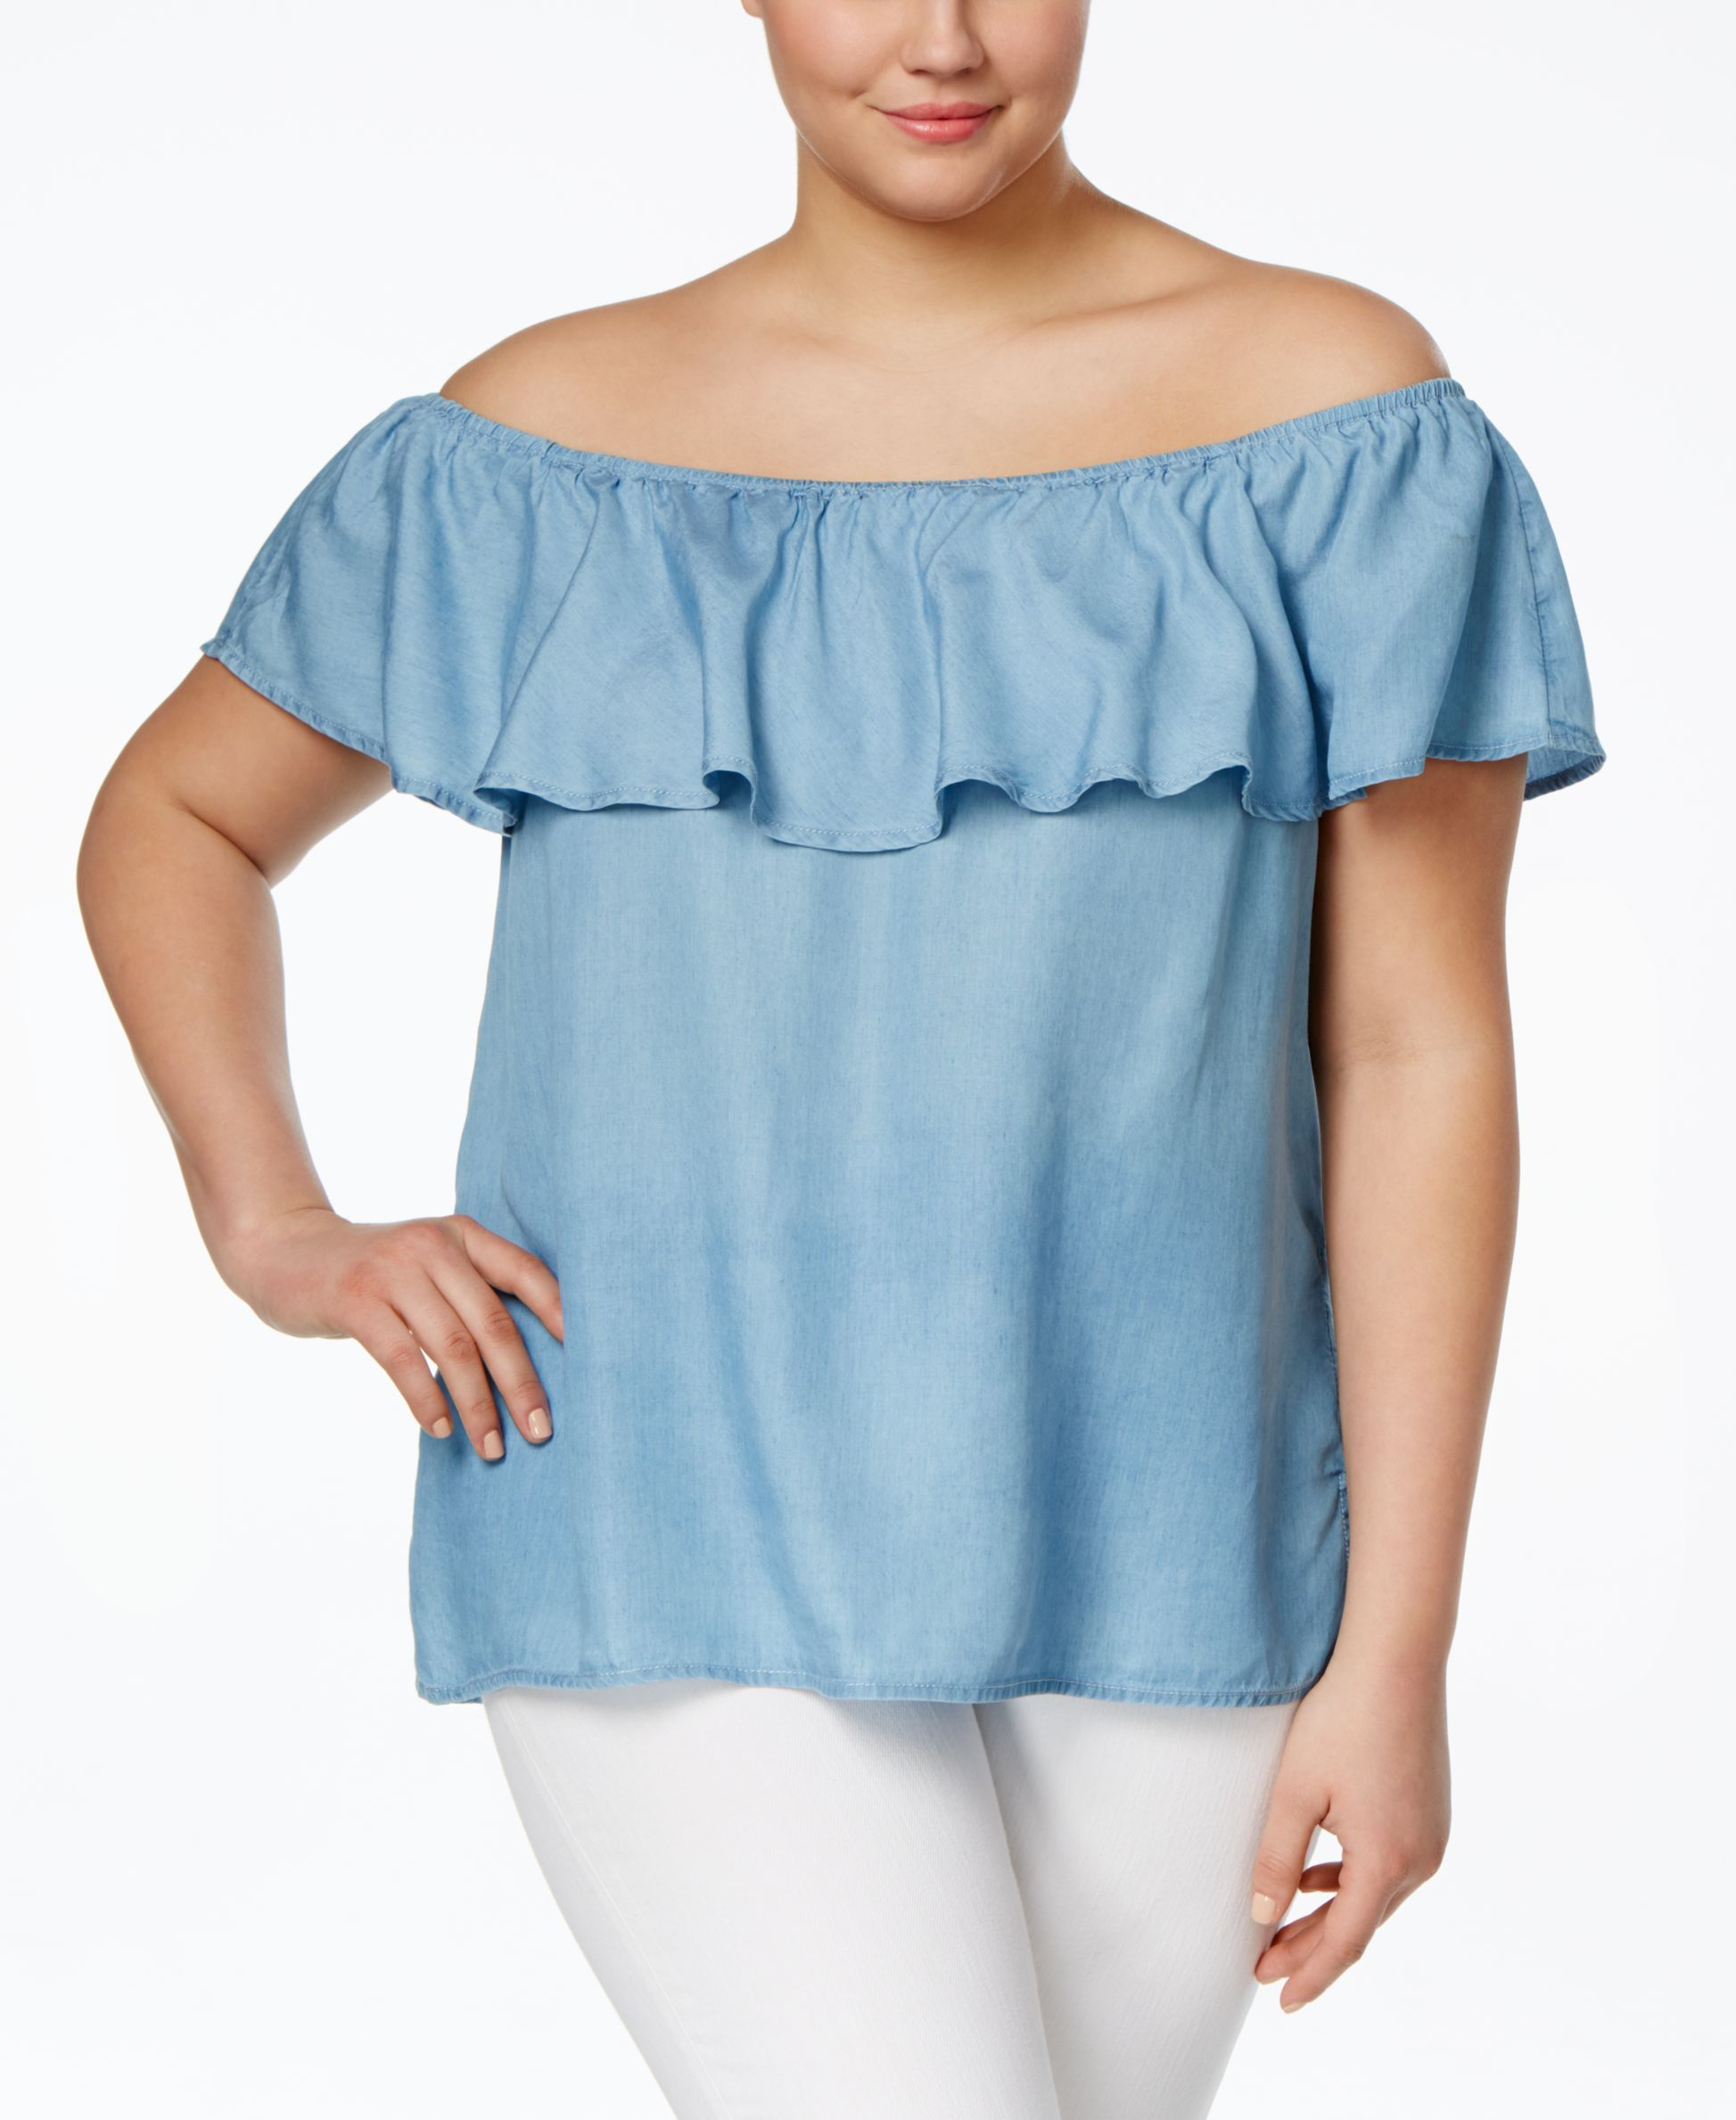 2786f382f6b61 American Rag Plus Size Off-the-Shoulder Chambray Top